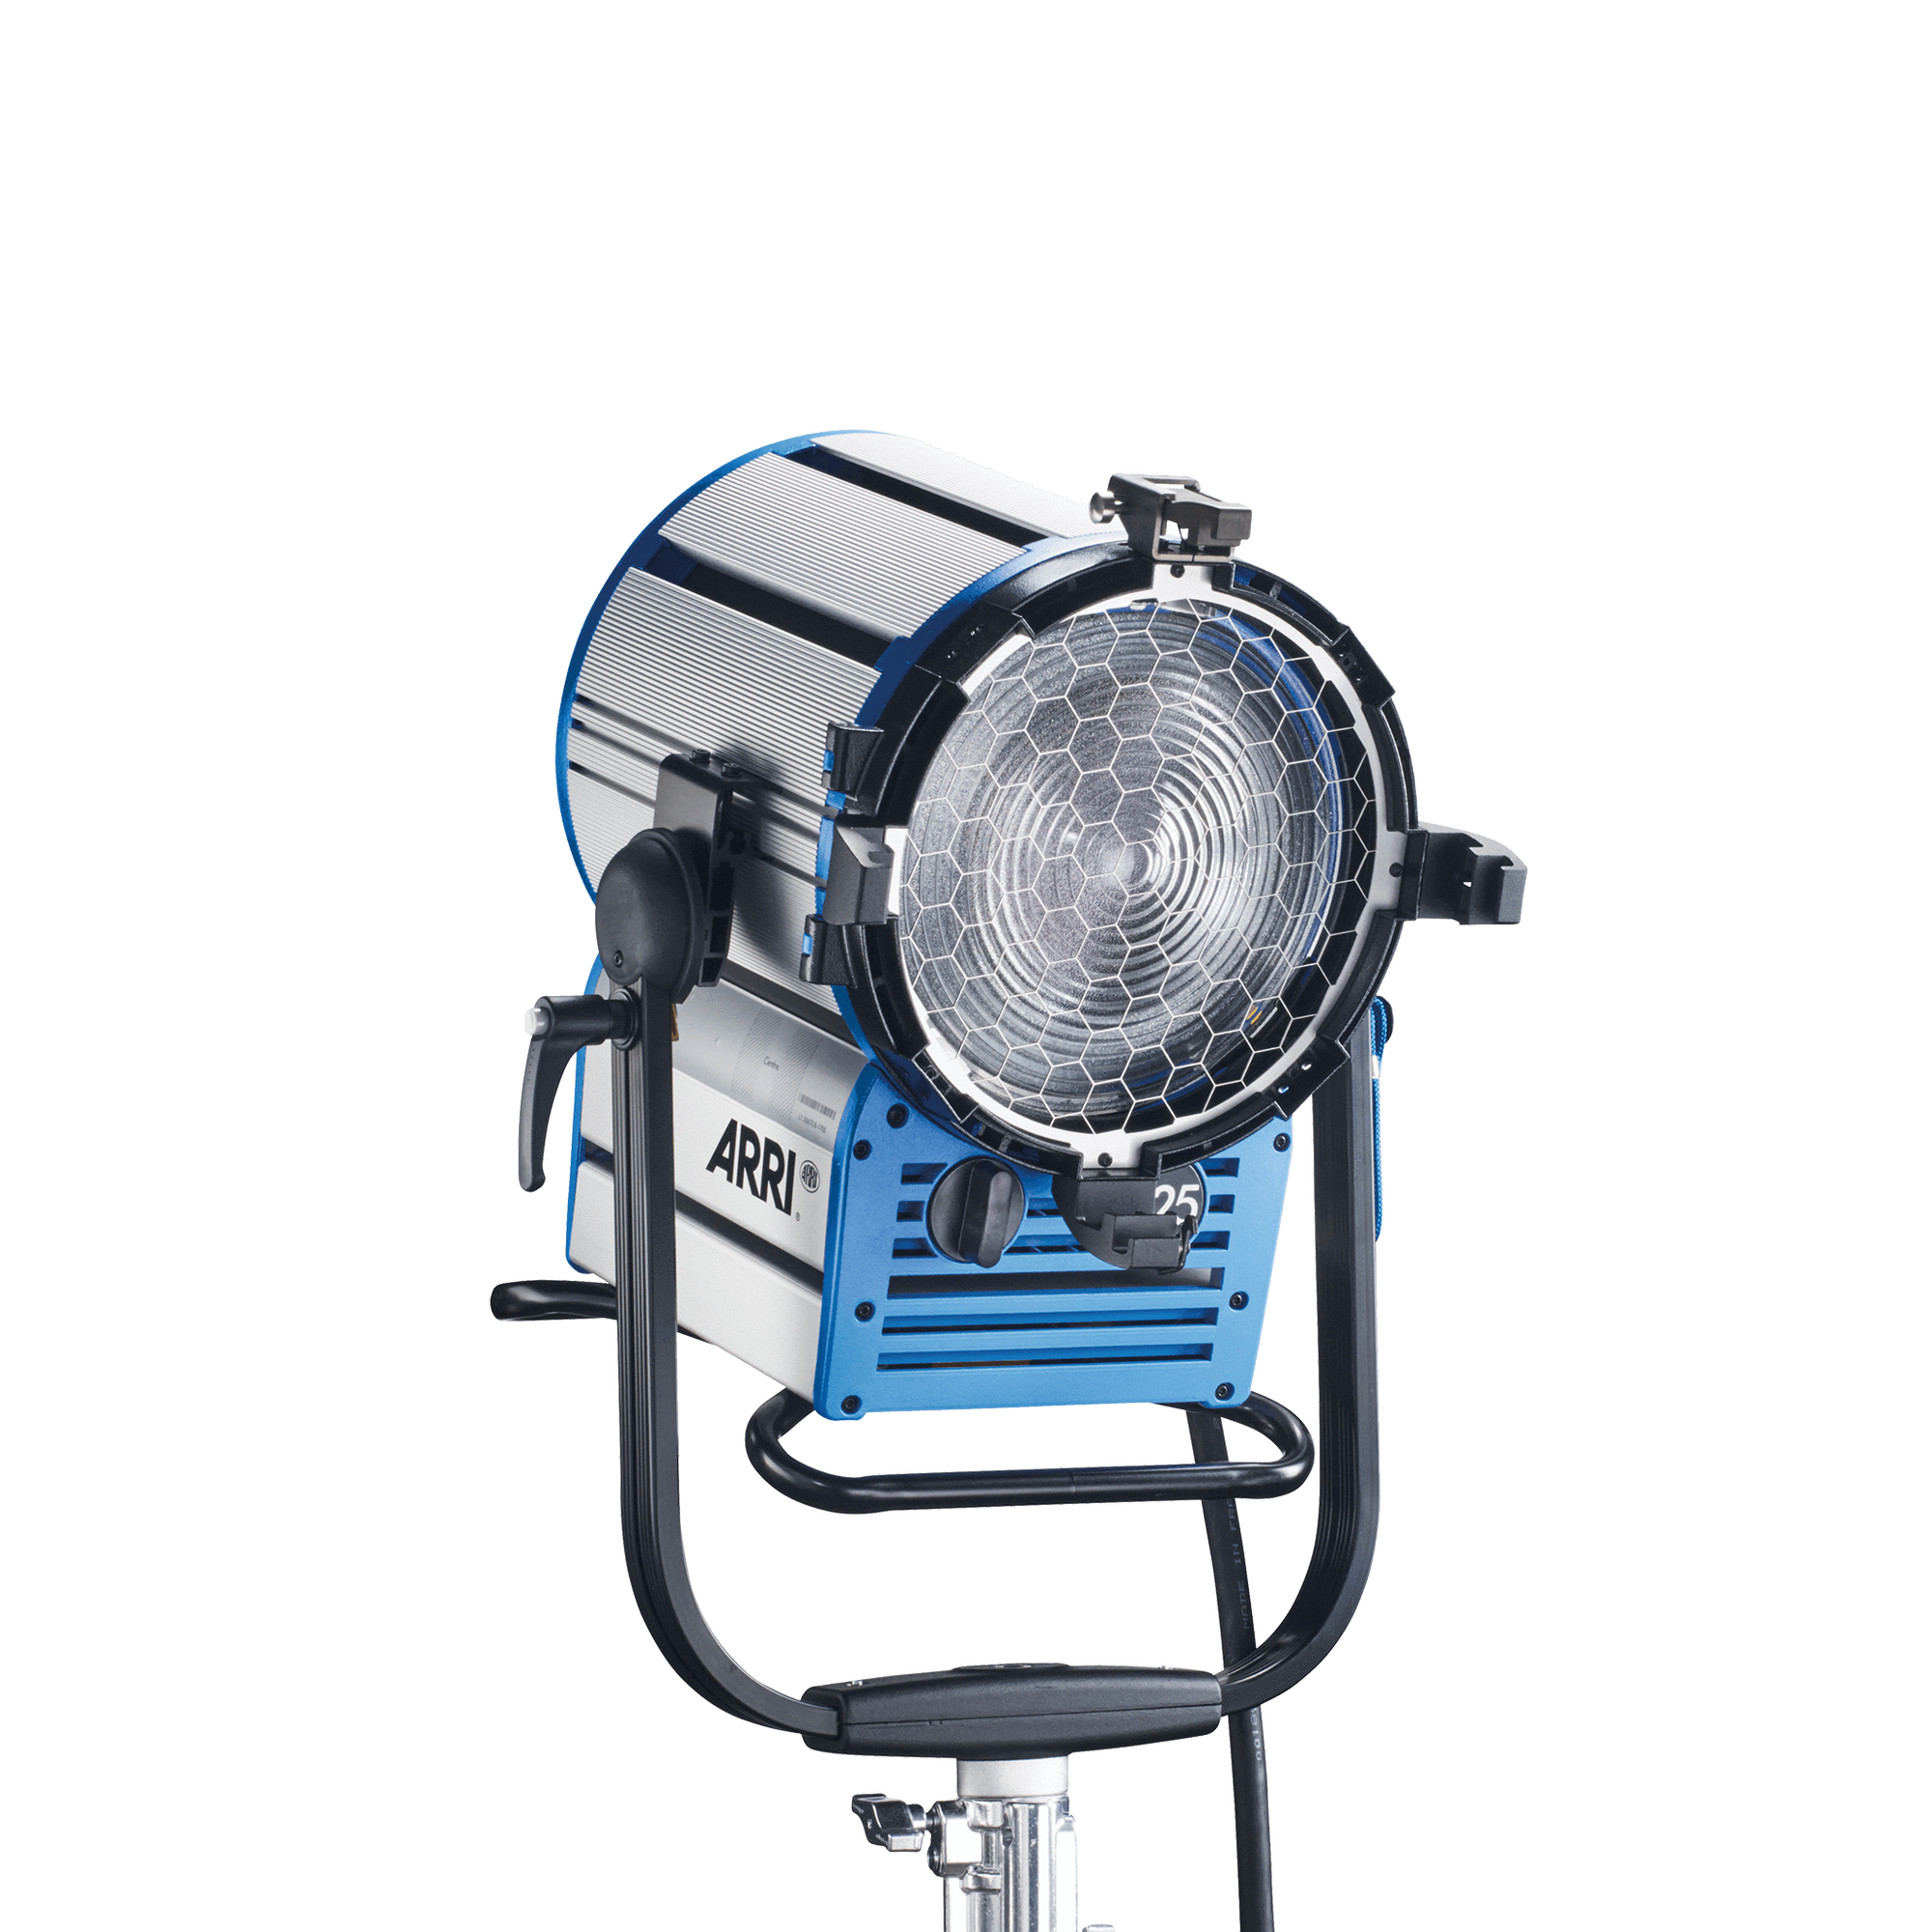 ARRI D25 True Blue Daylight 18/12 Fresnel 2500W